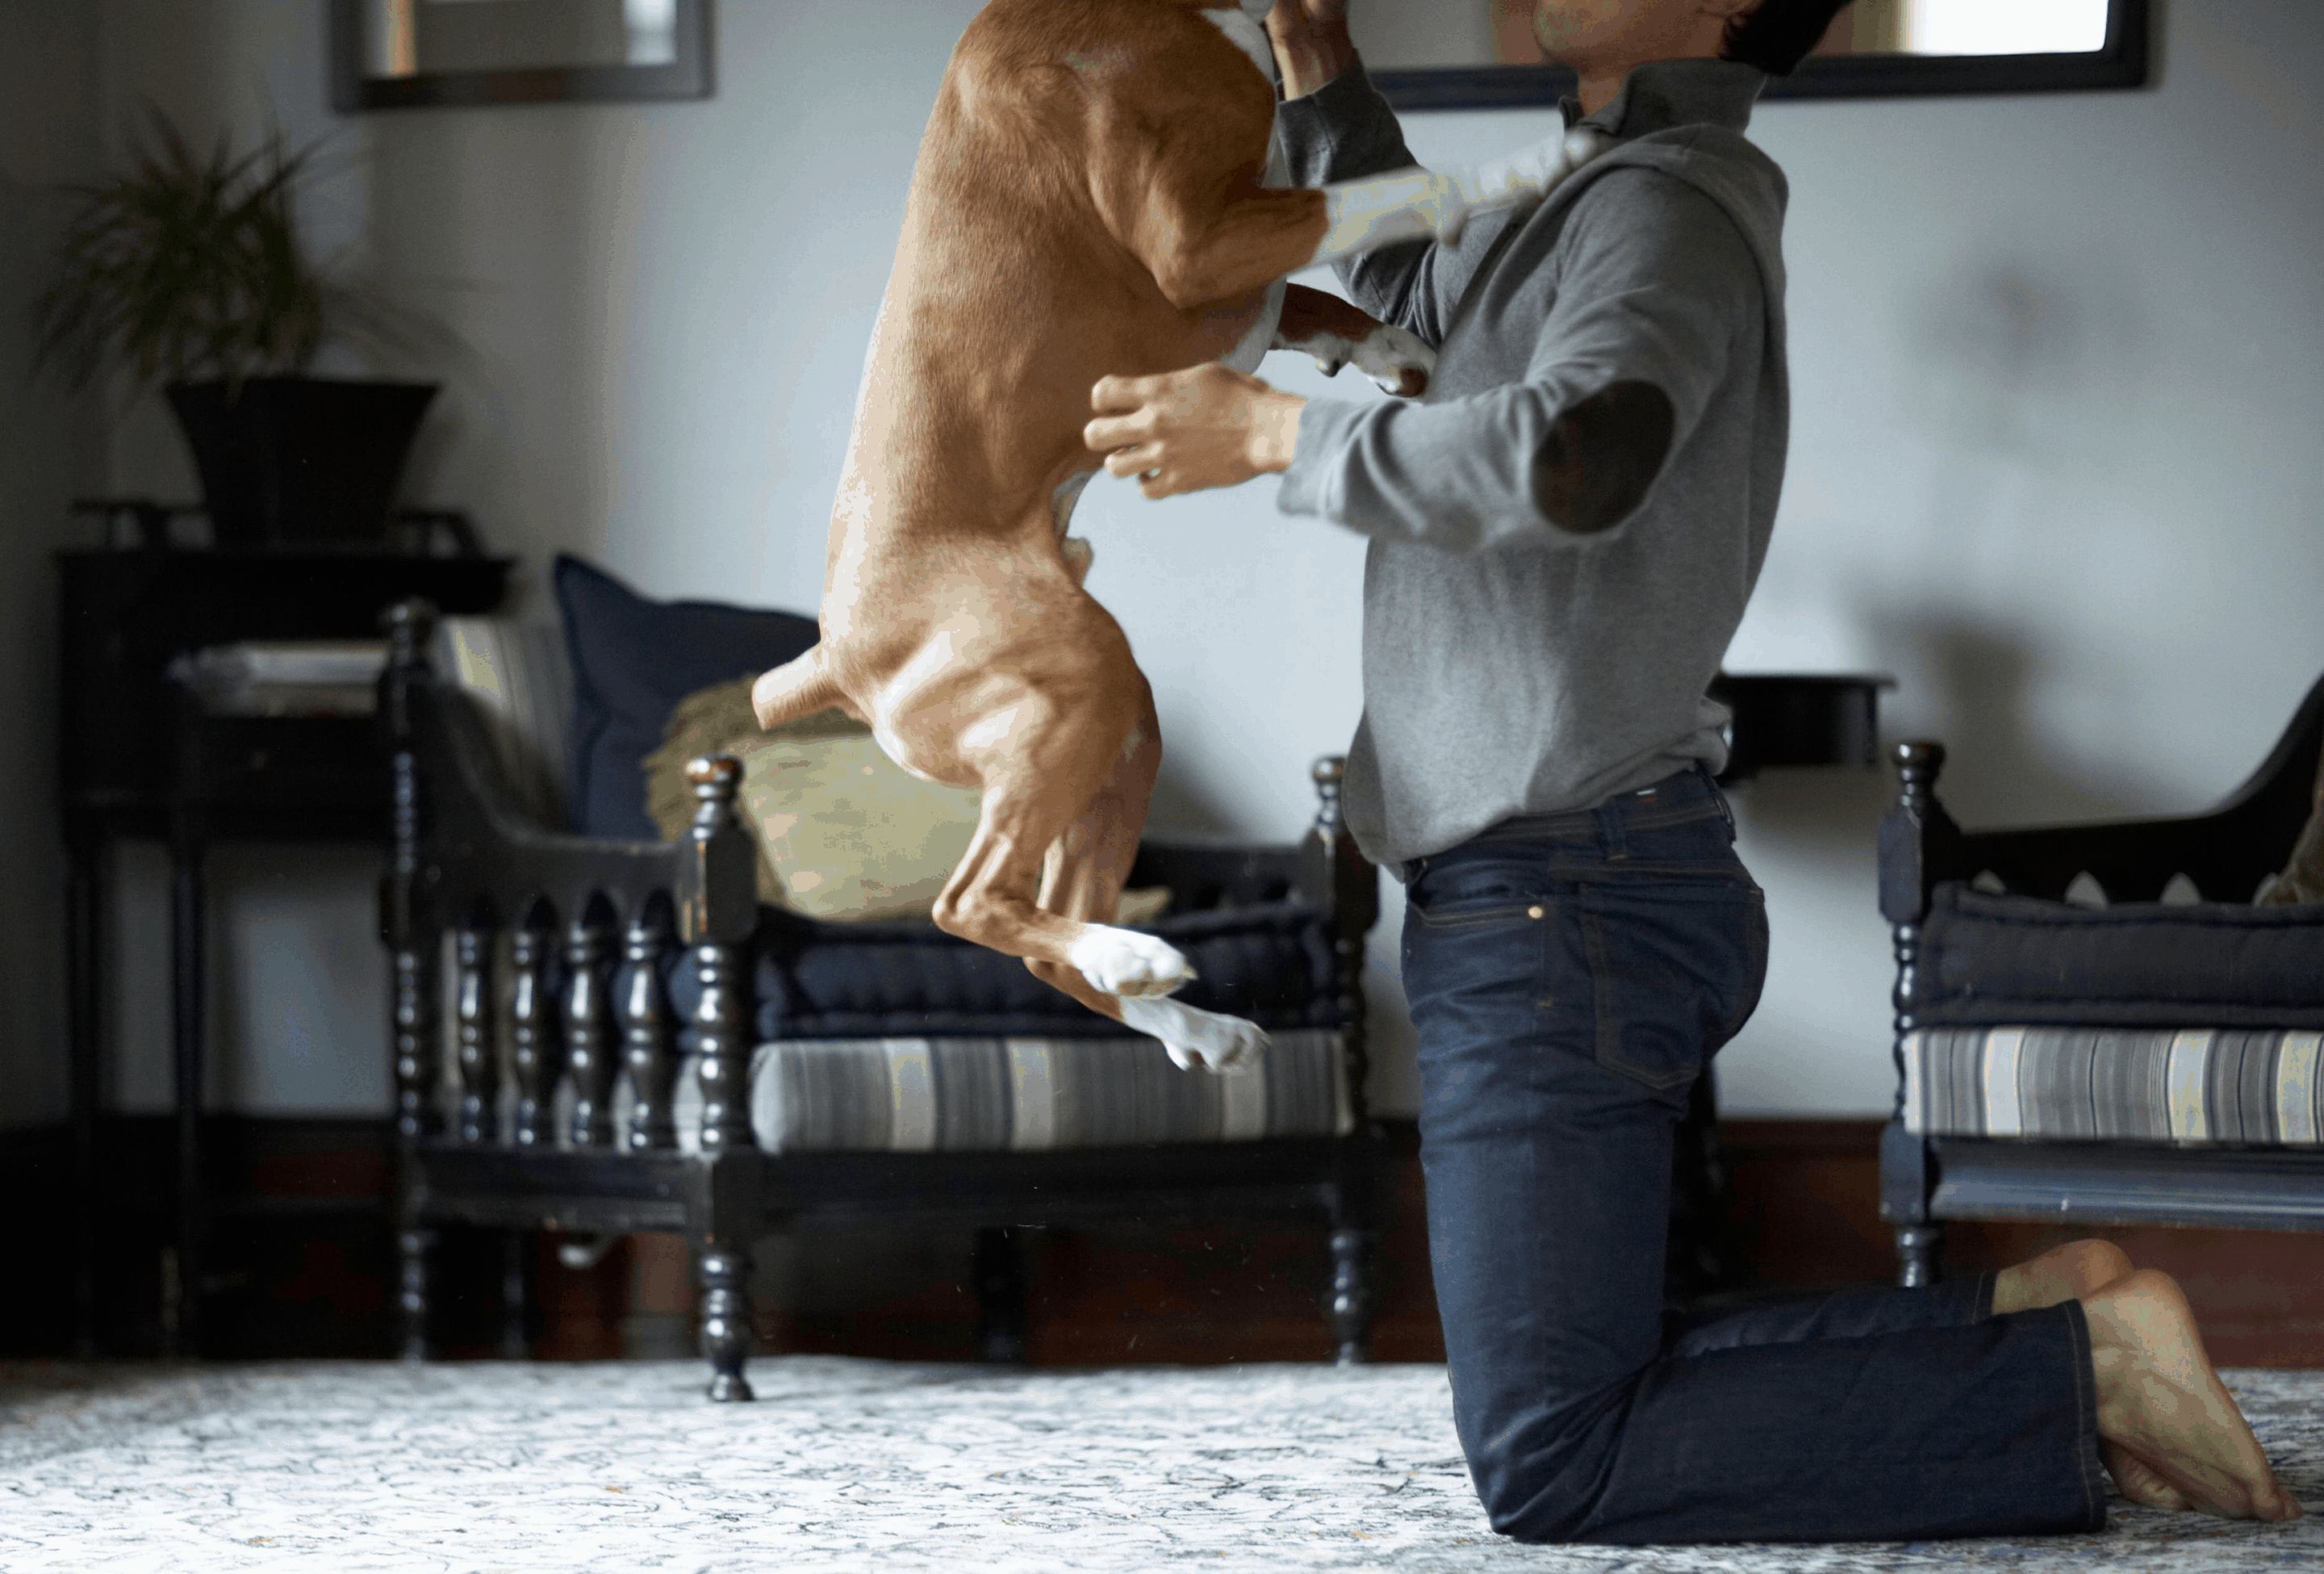 Dog jumping up on person.